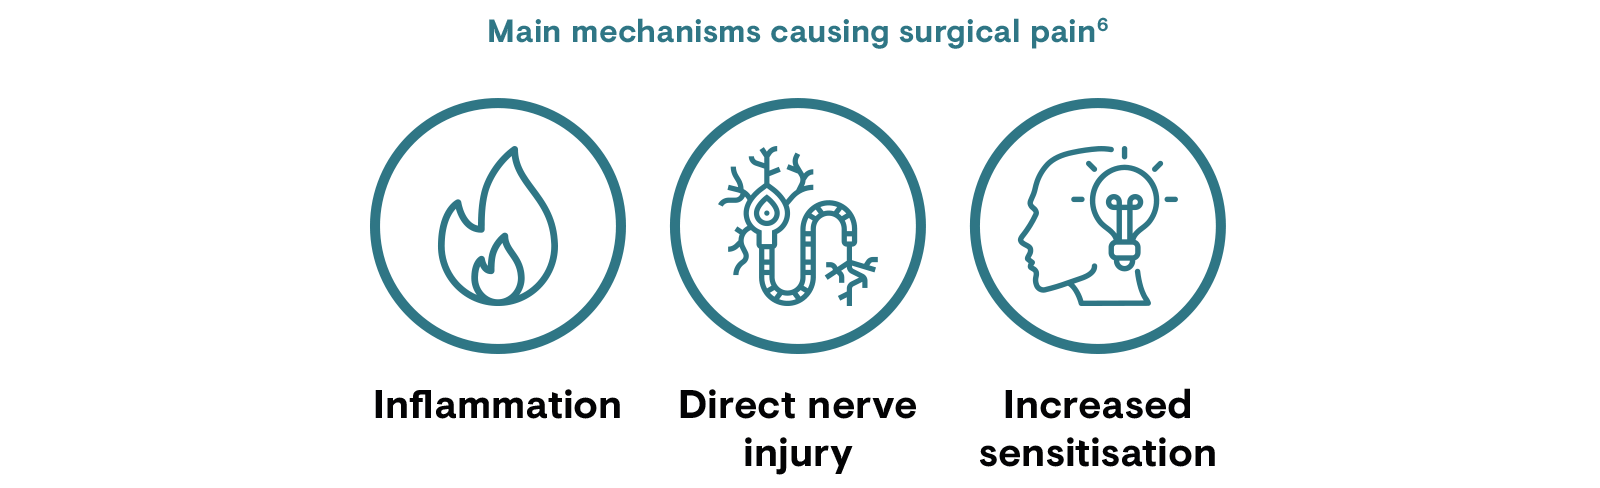 Main mechanisms causing surgical pain